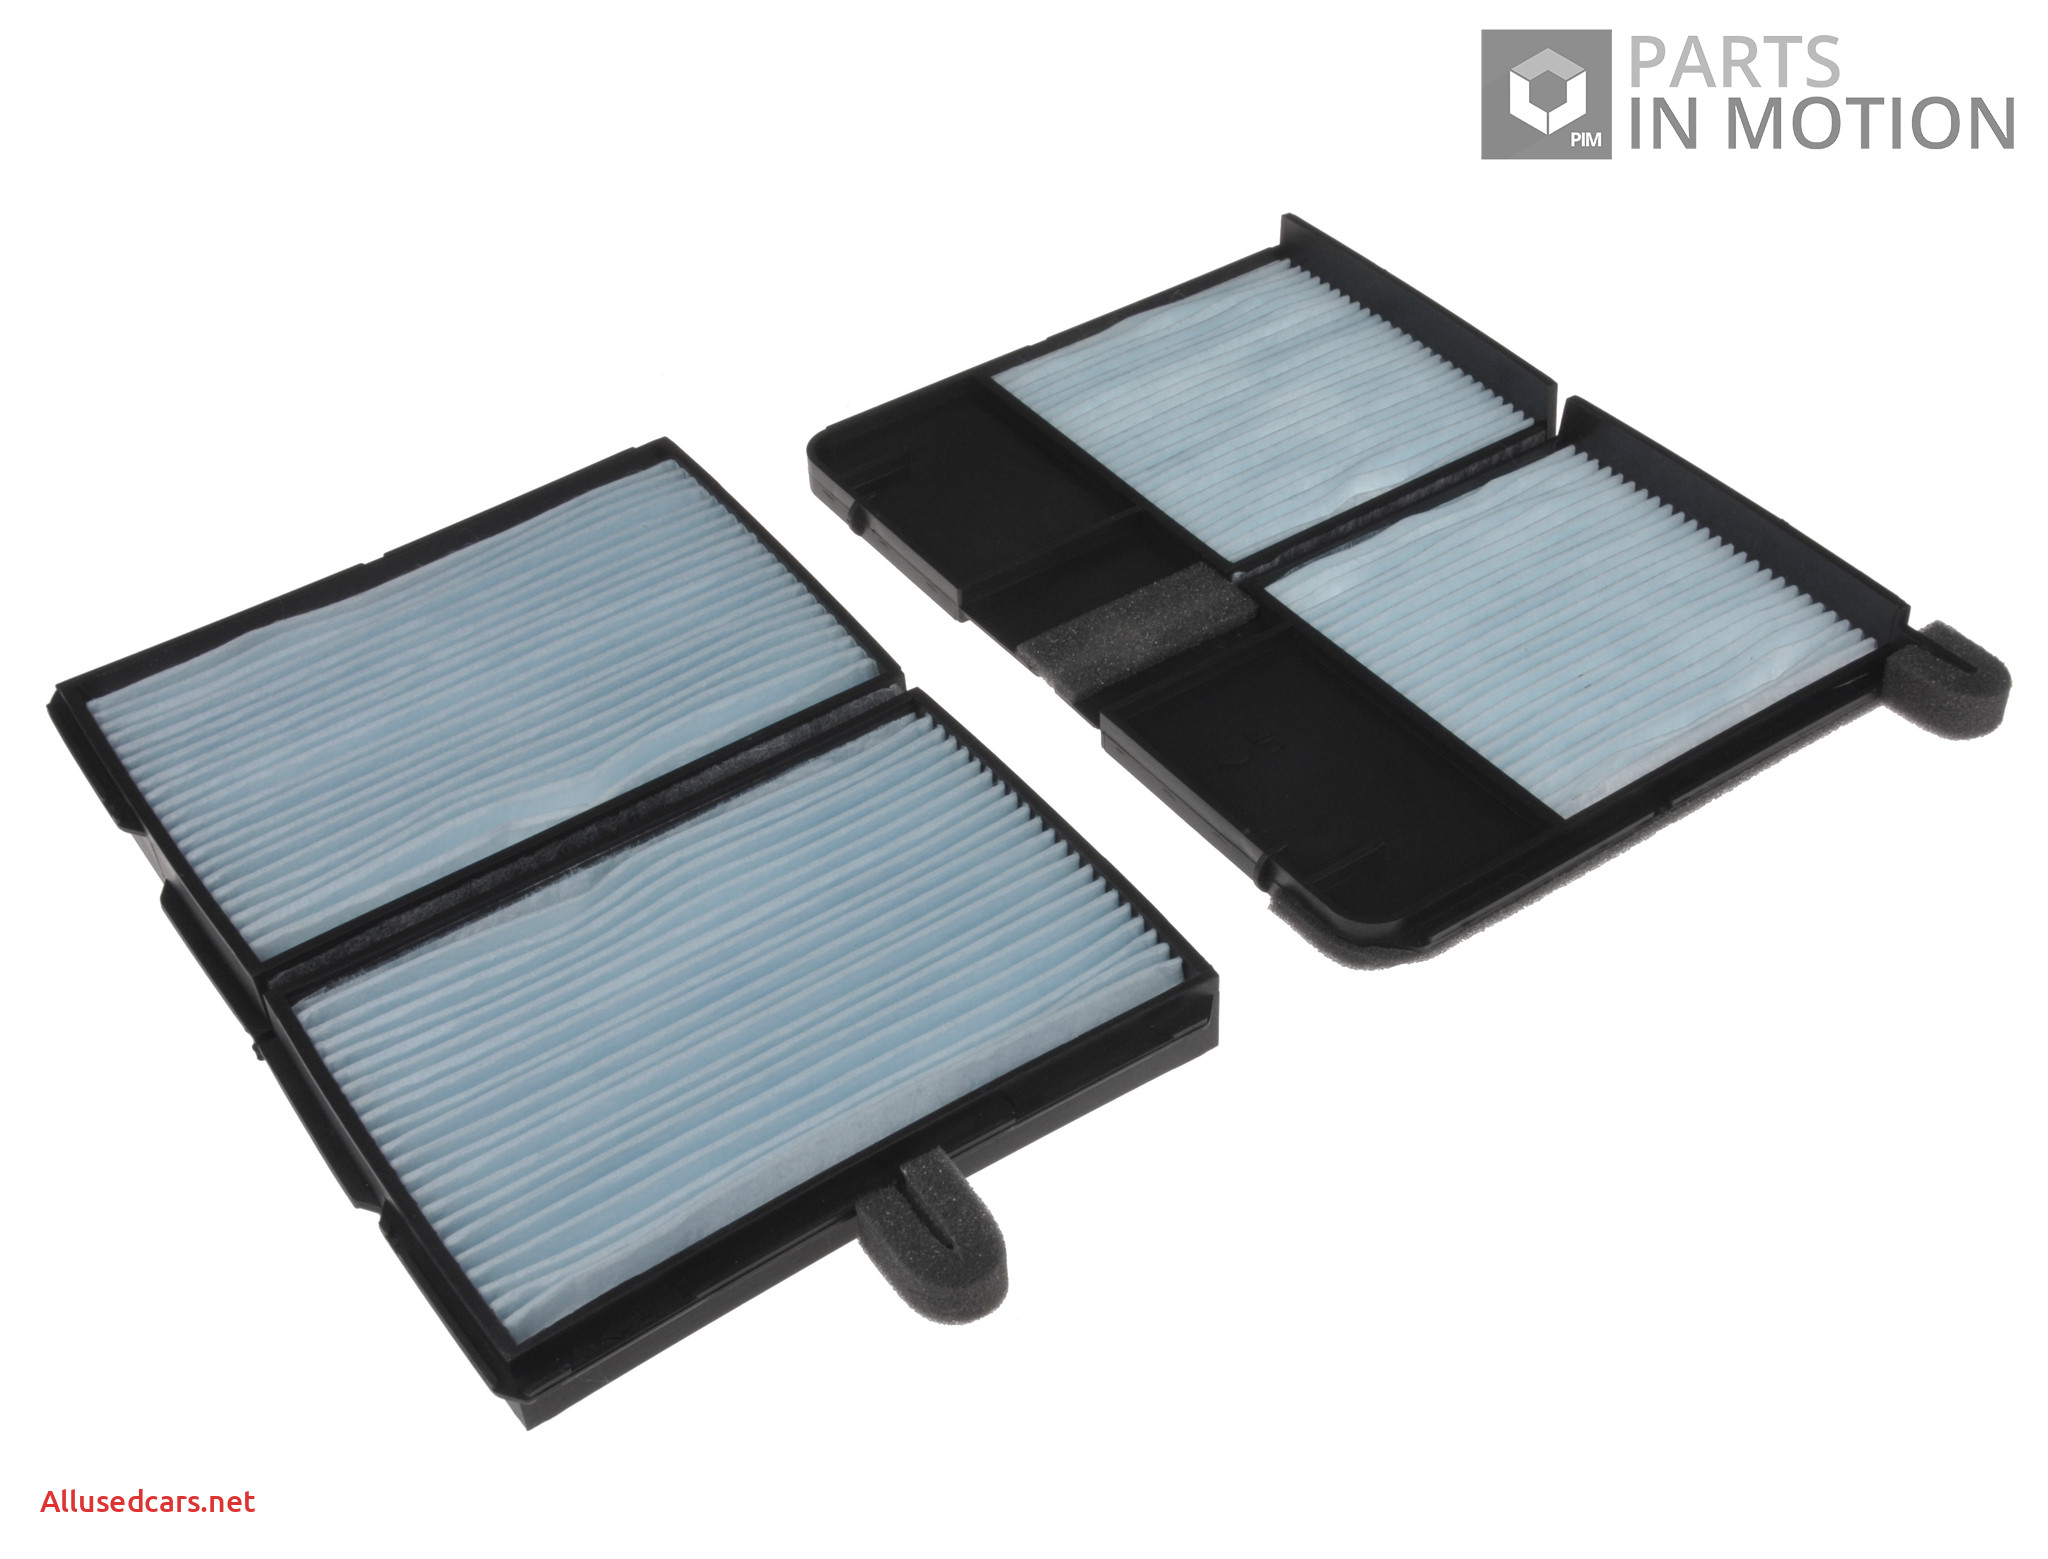 Mini Cooper Dealership Luxury Details About Pollen Cabin Filter Fits toyota Caldina Ct190 2 0d 96 to 97 2c T Adl Quality